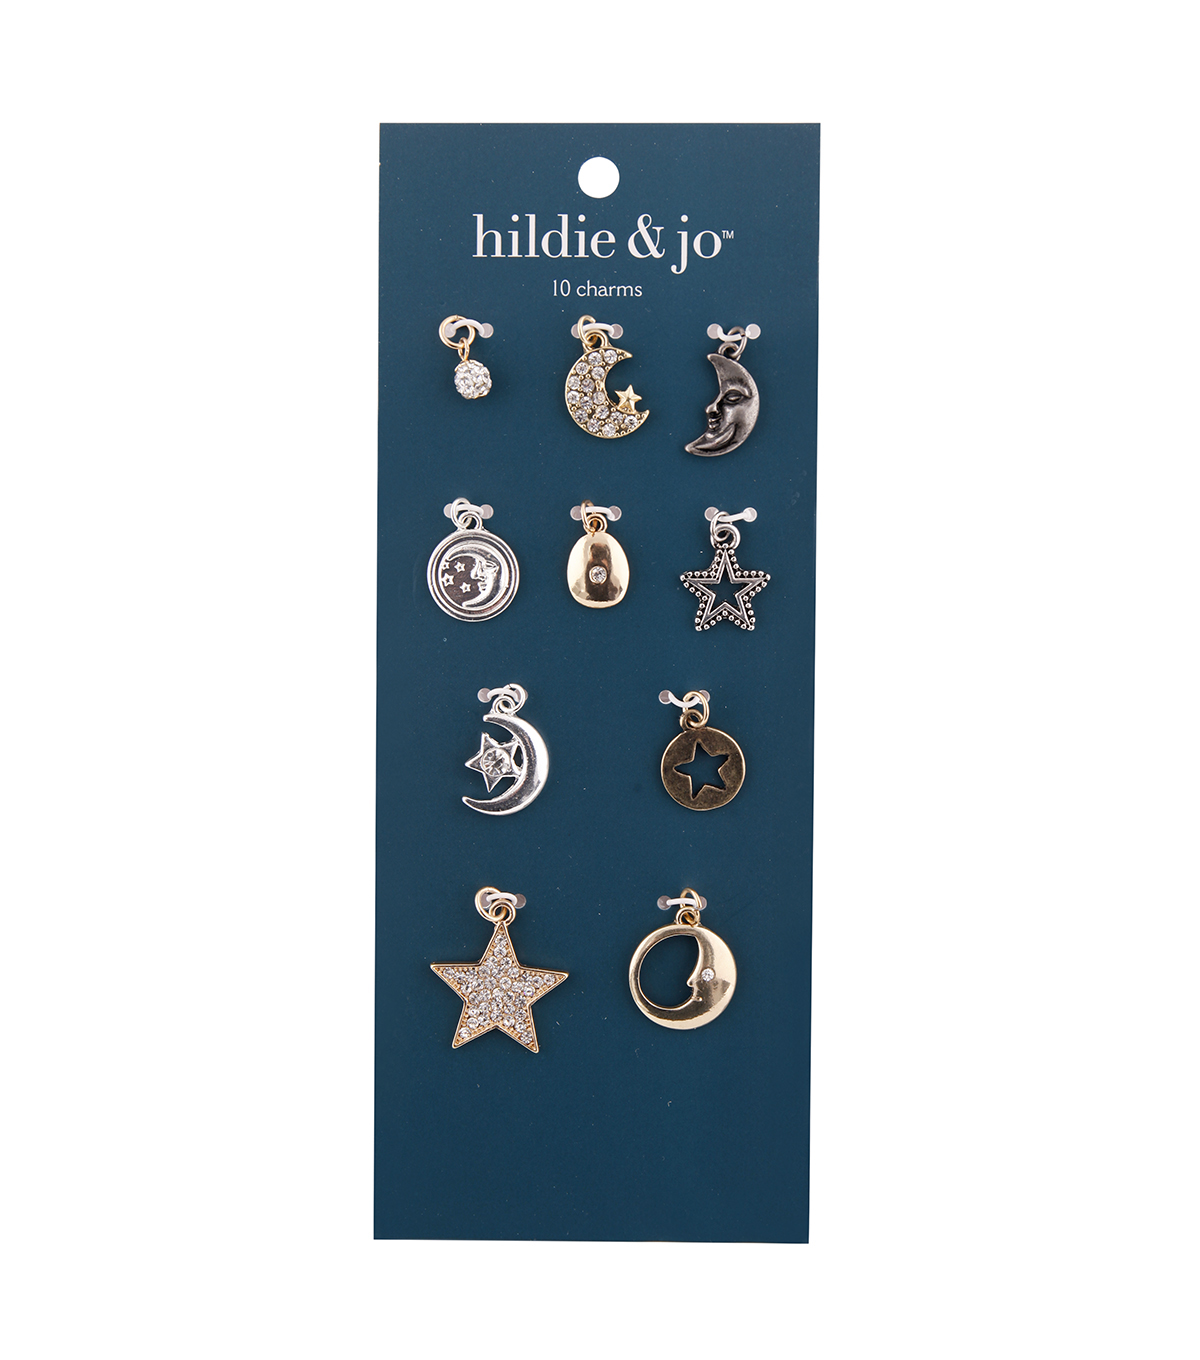 hildie & jo Zinc Alloy & Iron Star & Moon Charm Pack